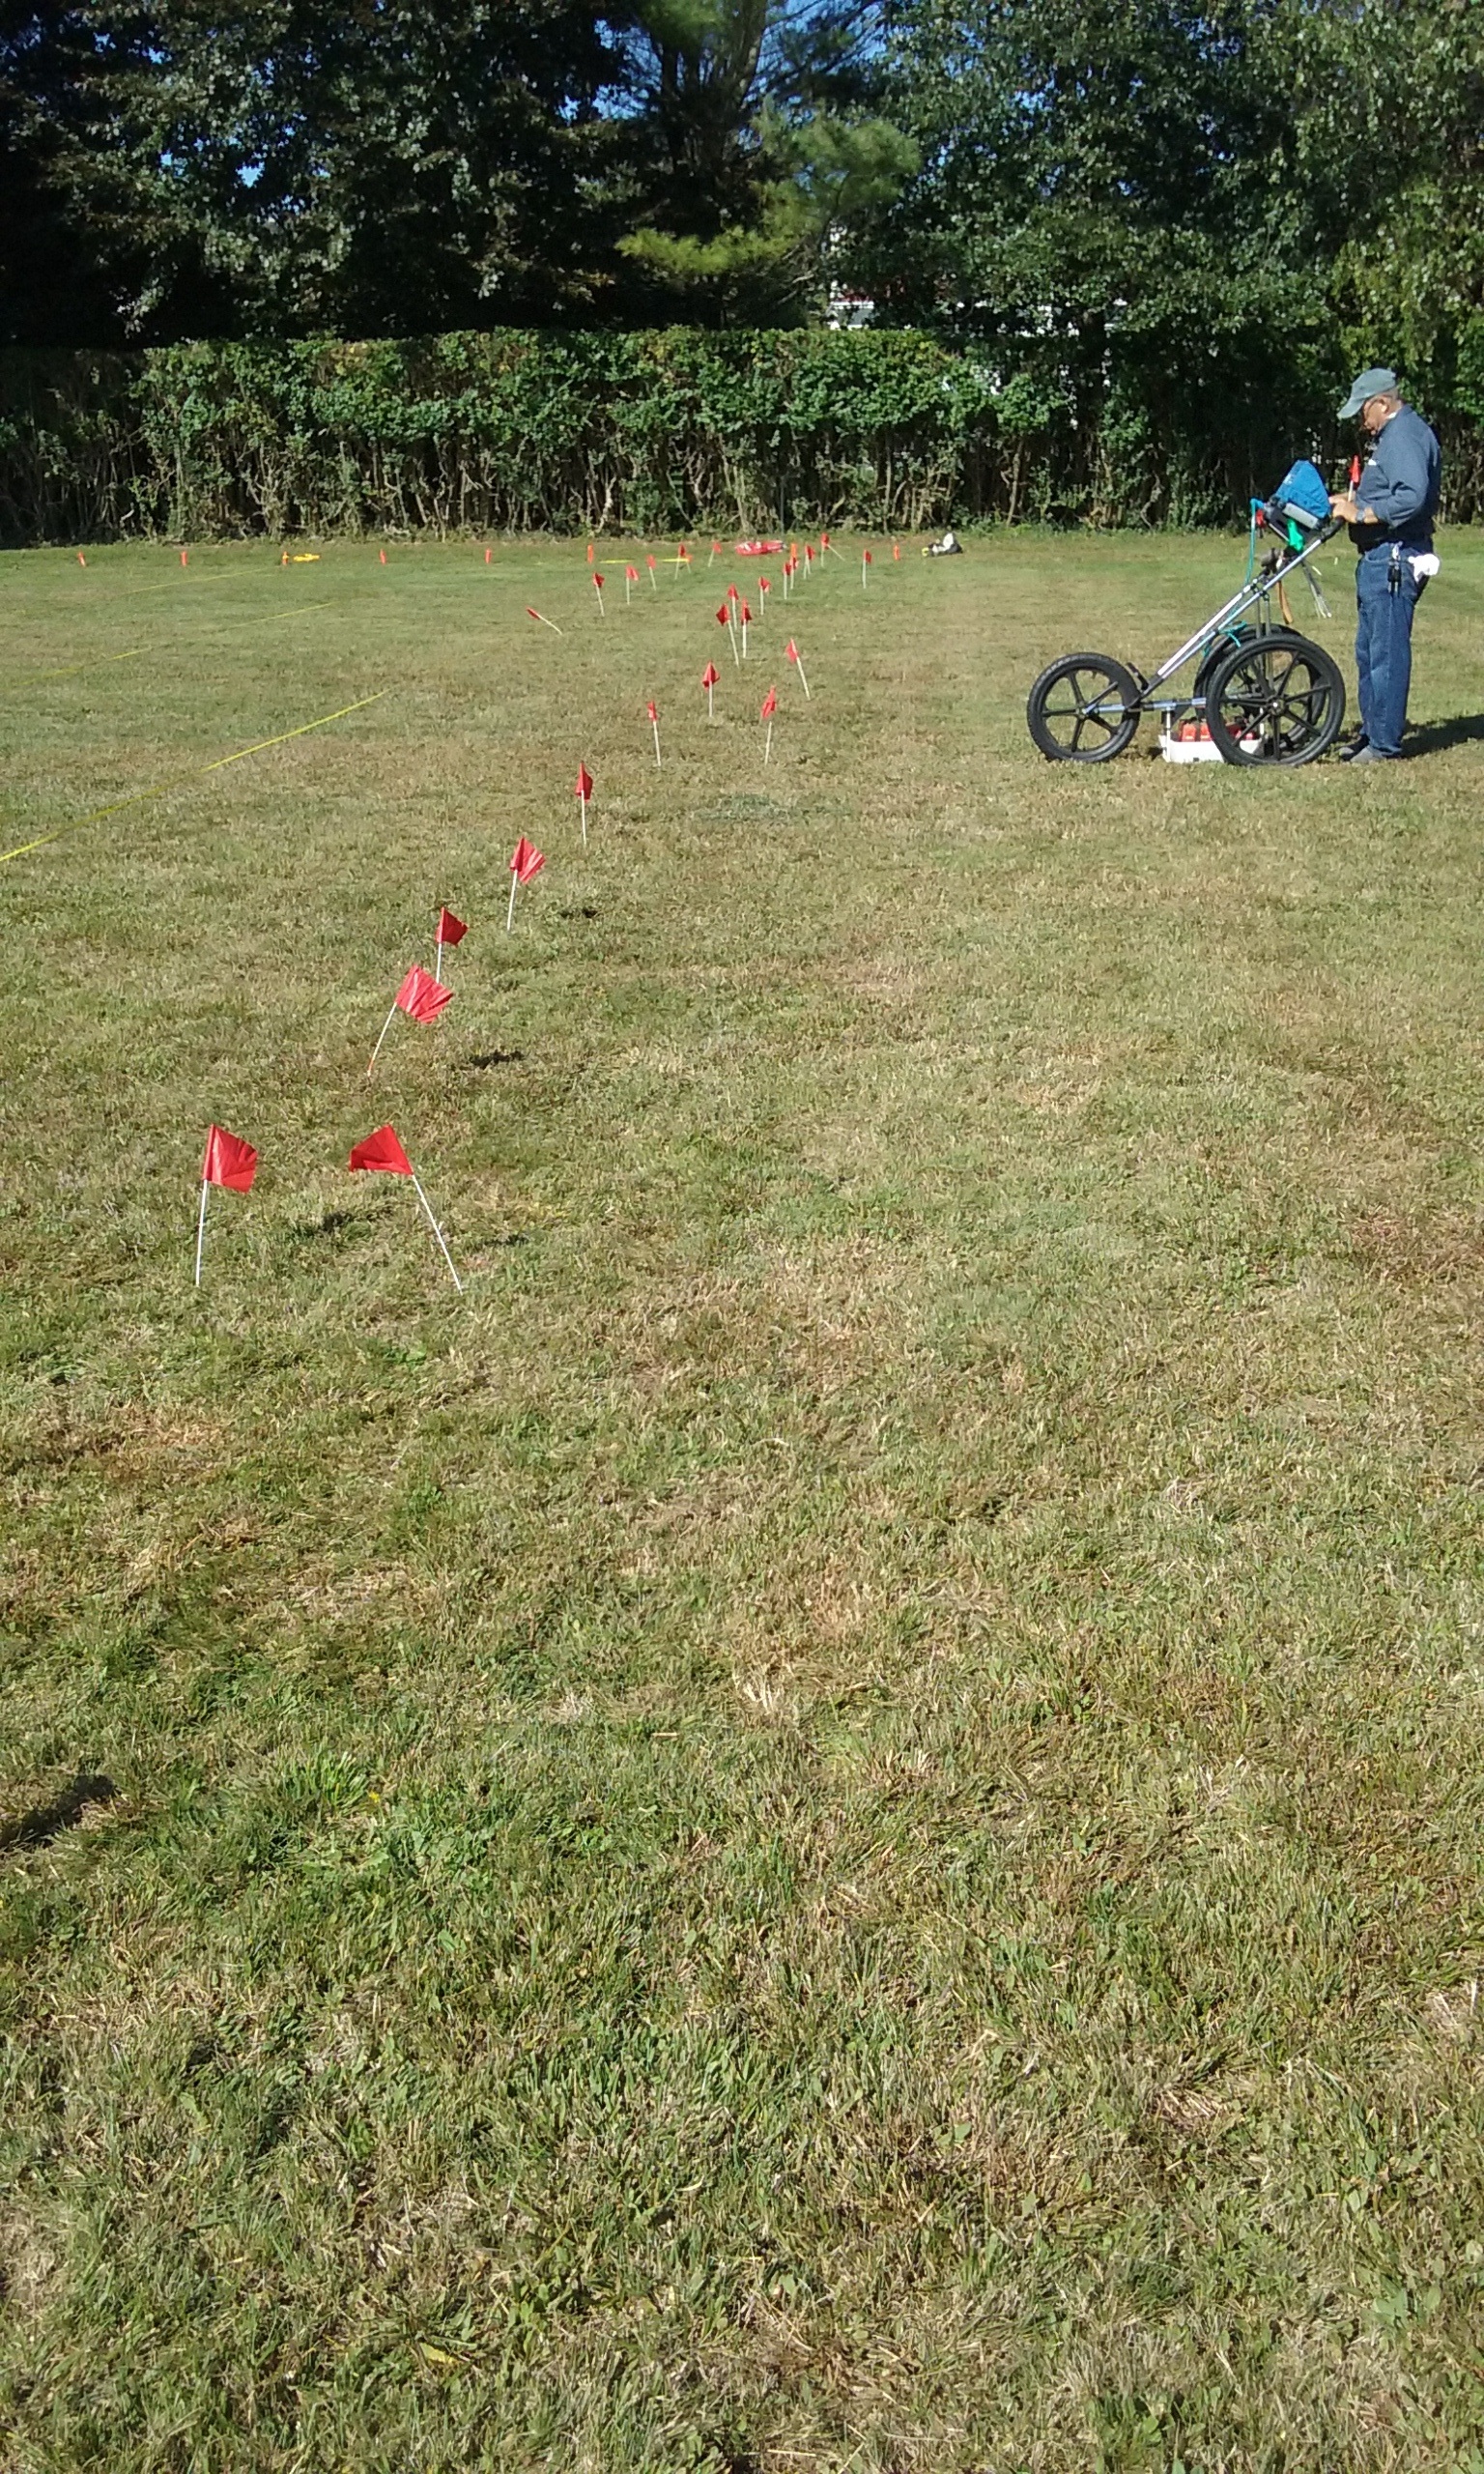 GPR at Old Burial Ground